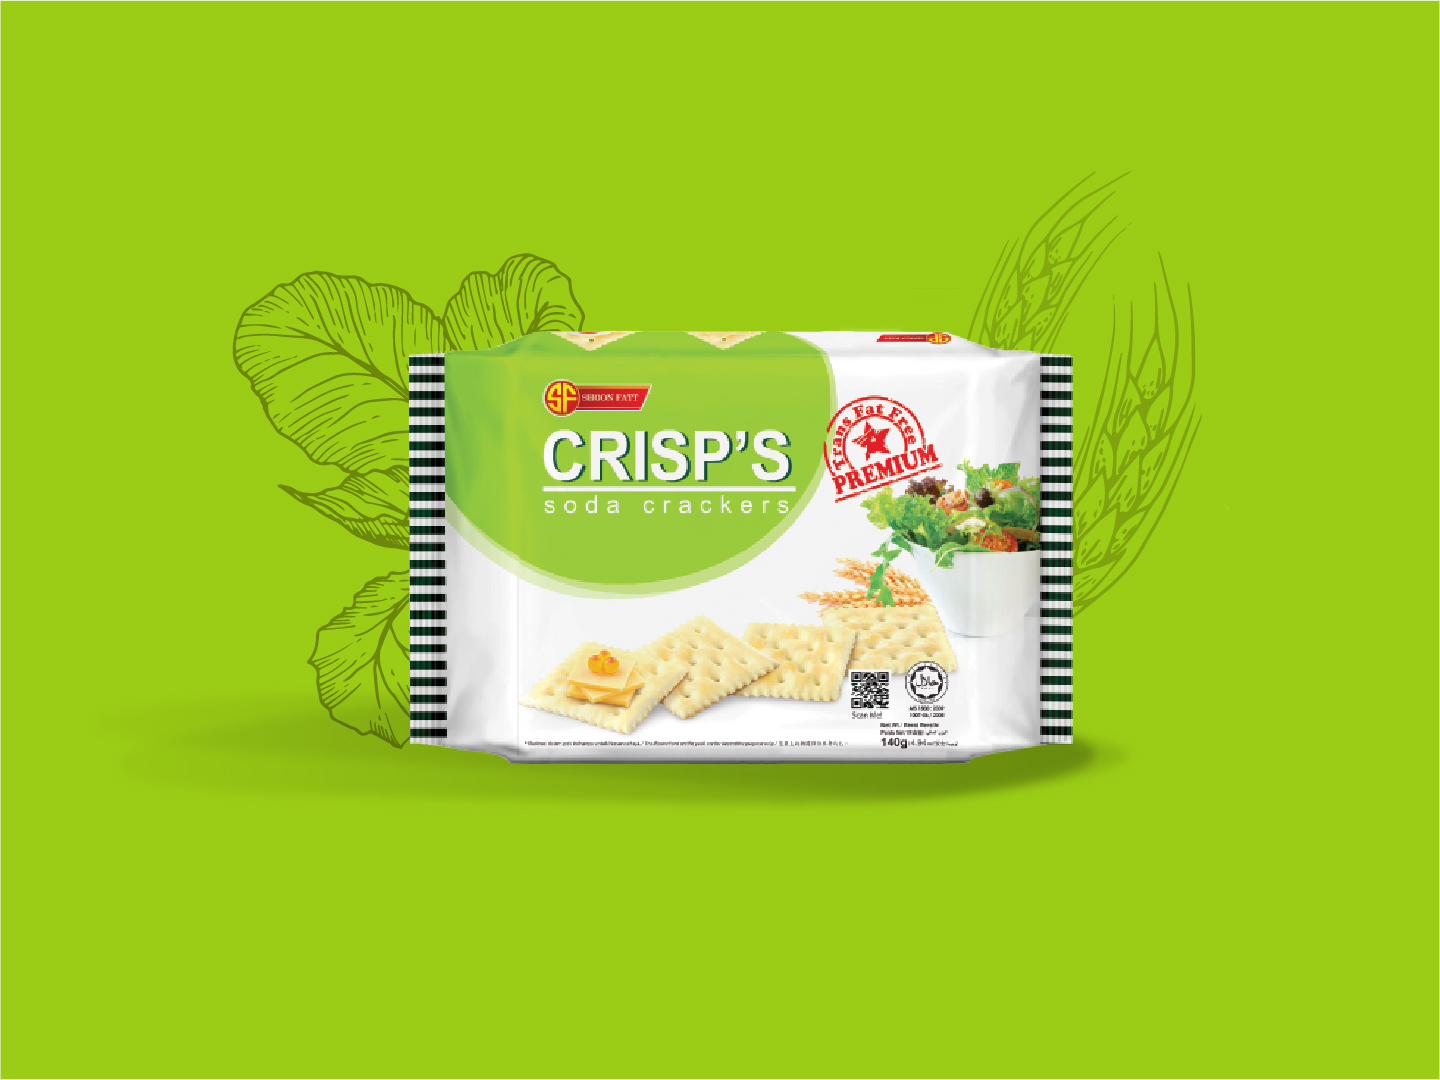 Shoon Fatt Crisp's Soda Crackers